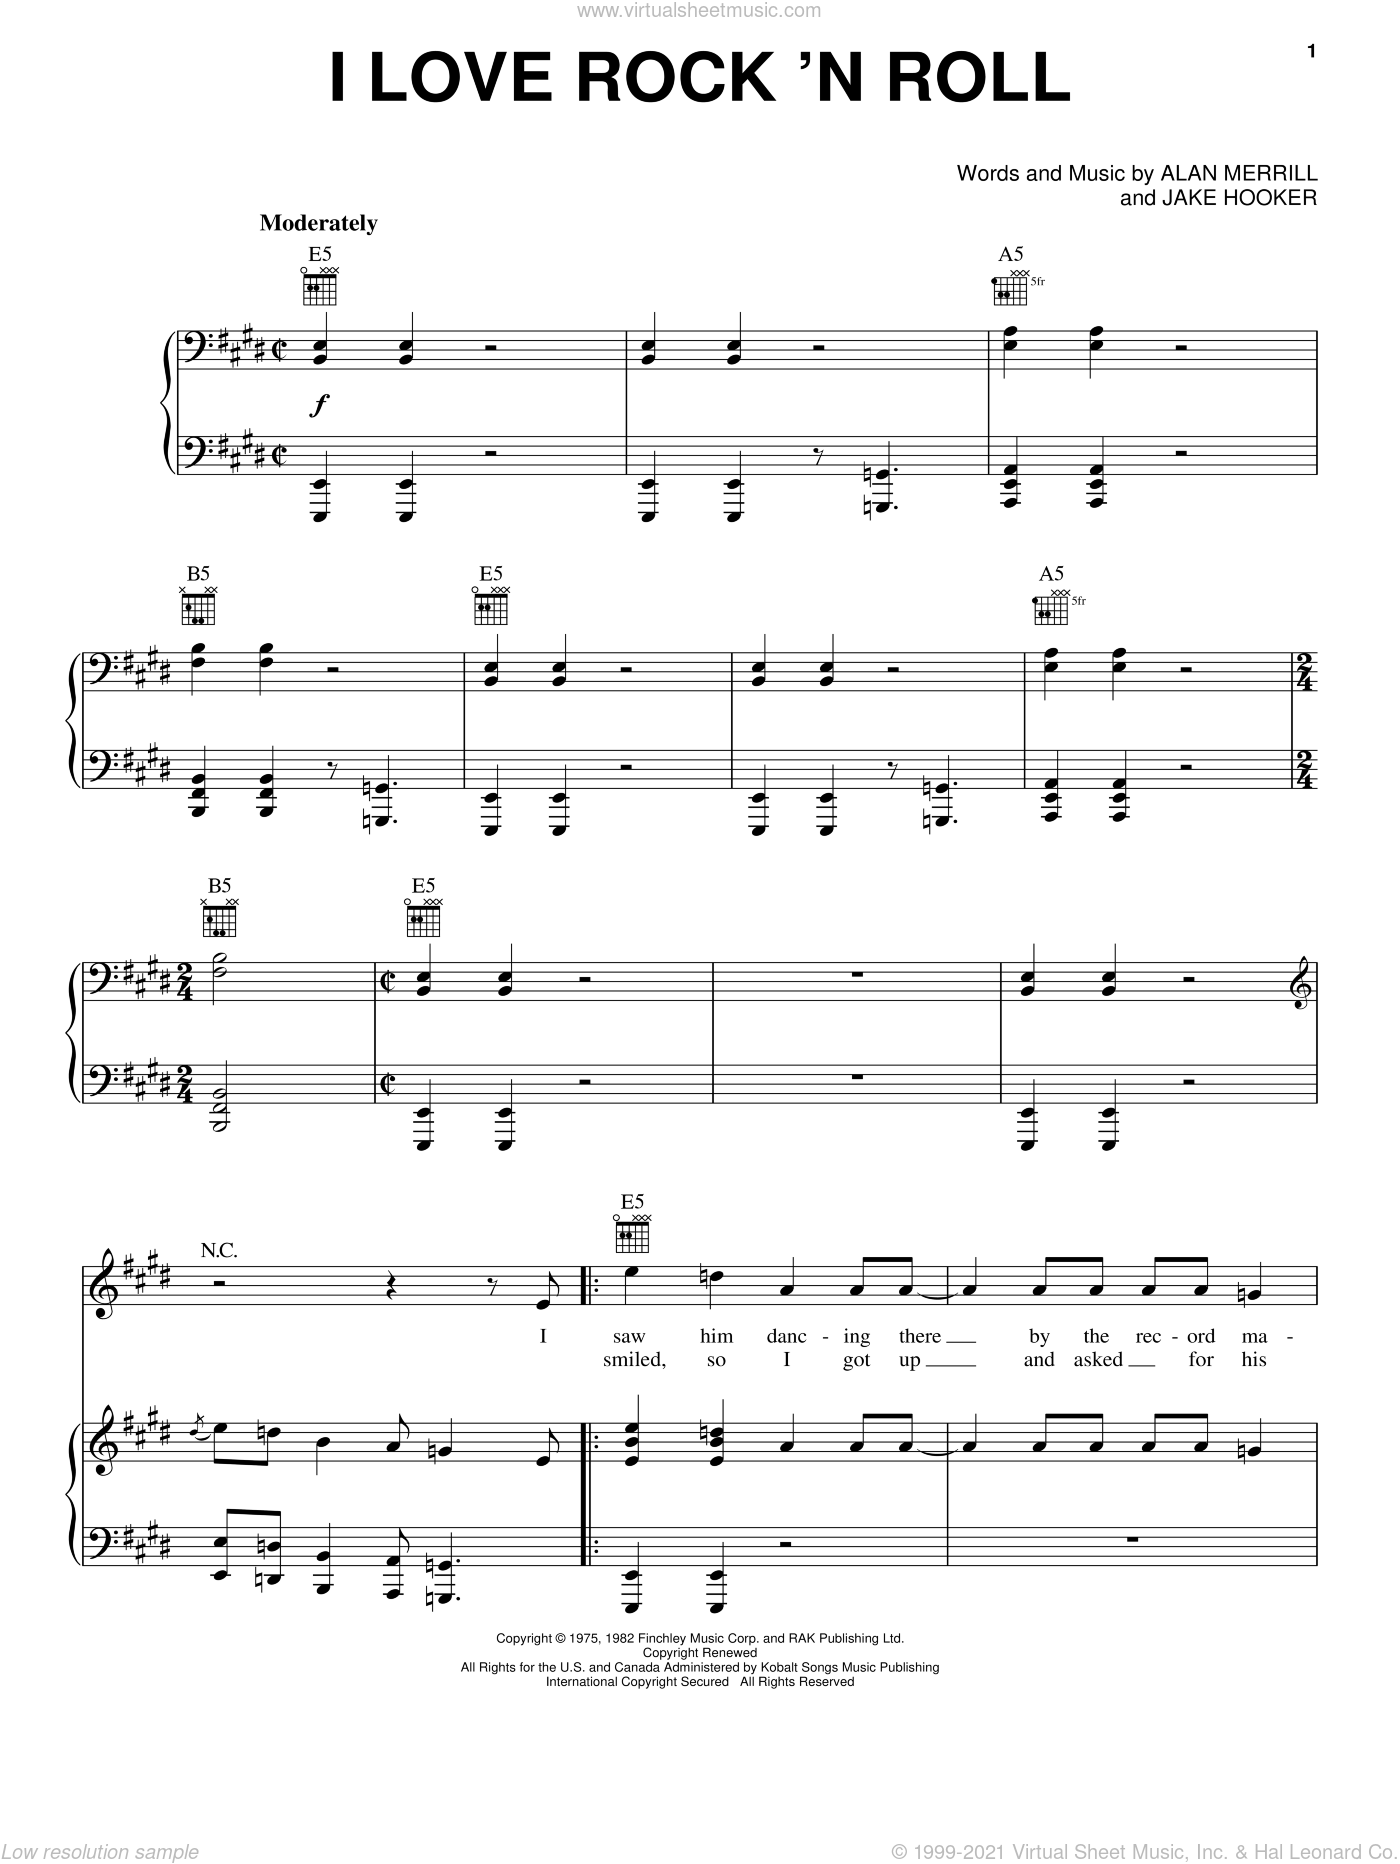 I Love Rock 'N Roll sheet music for voice, piano or guitar by Joan Jett & The Blackhearts, Joan Jett, Alan Merrill and Jake Hooker, intermediate skill level